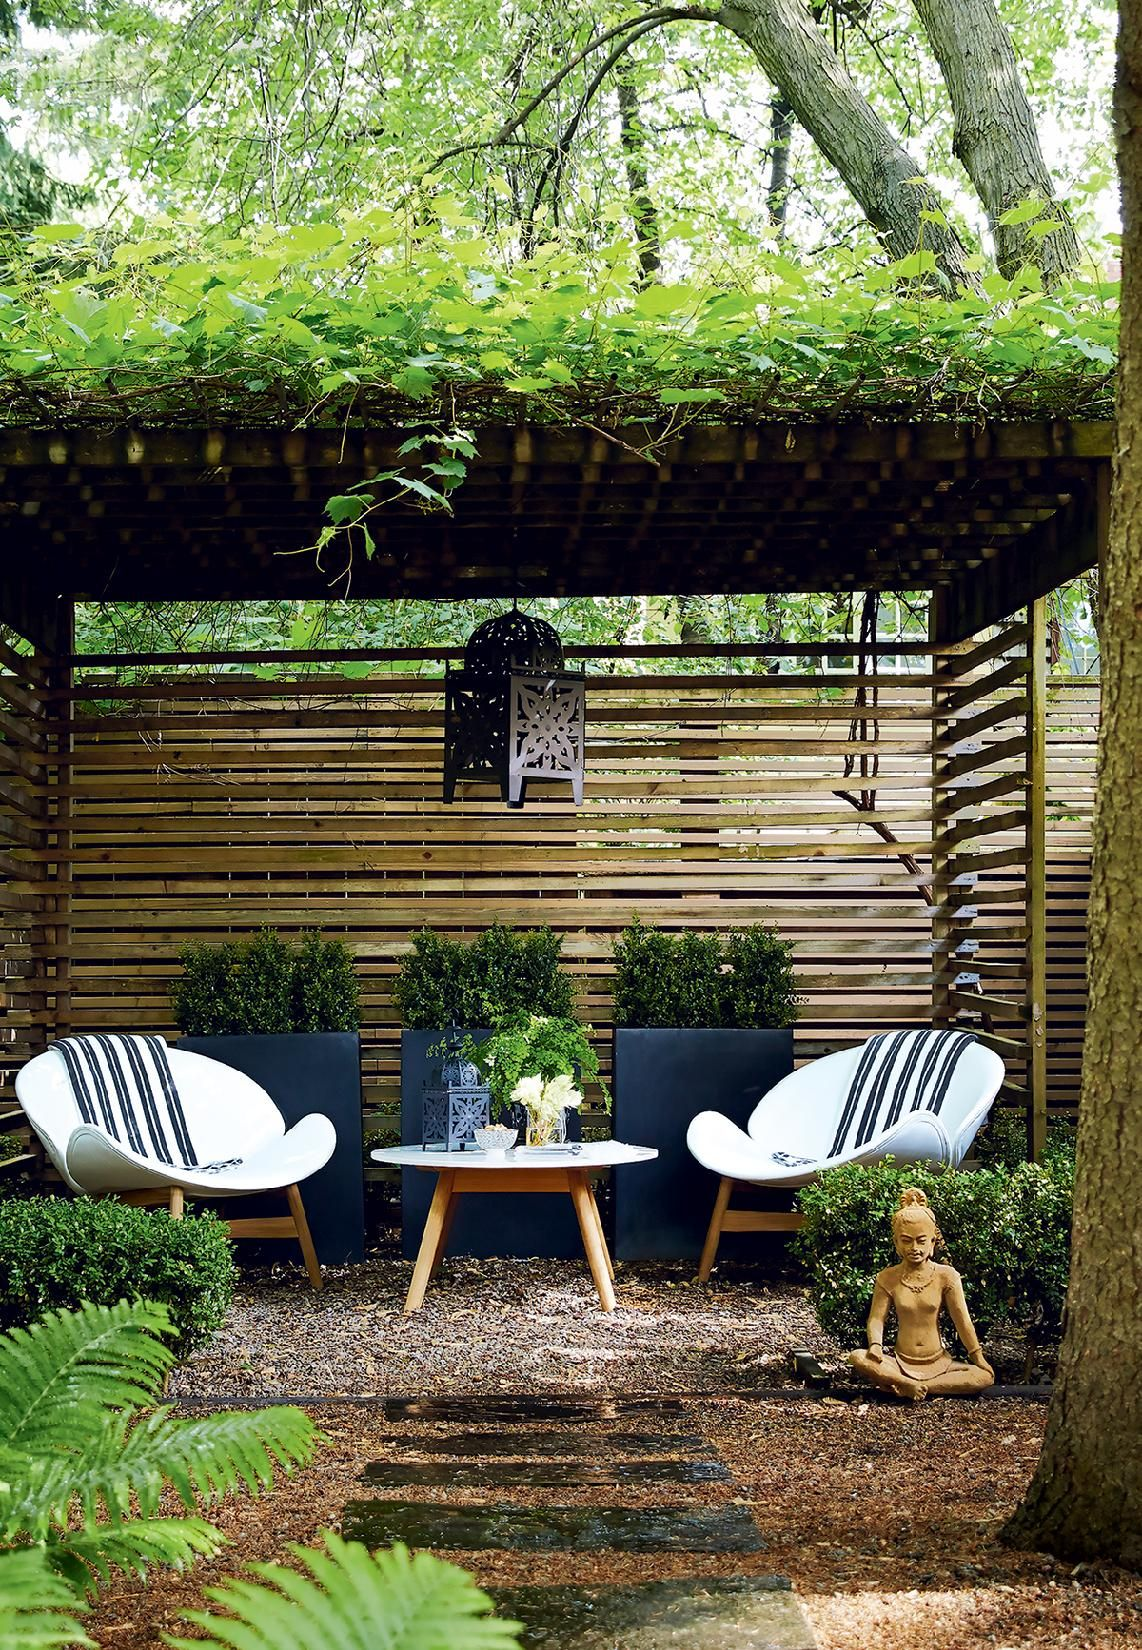 Outdoor decor: Urban getaway | Planters, Outdoor decor and ... on Back Garden Seating Area Ideas  id=75620